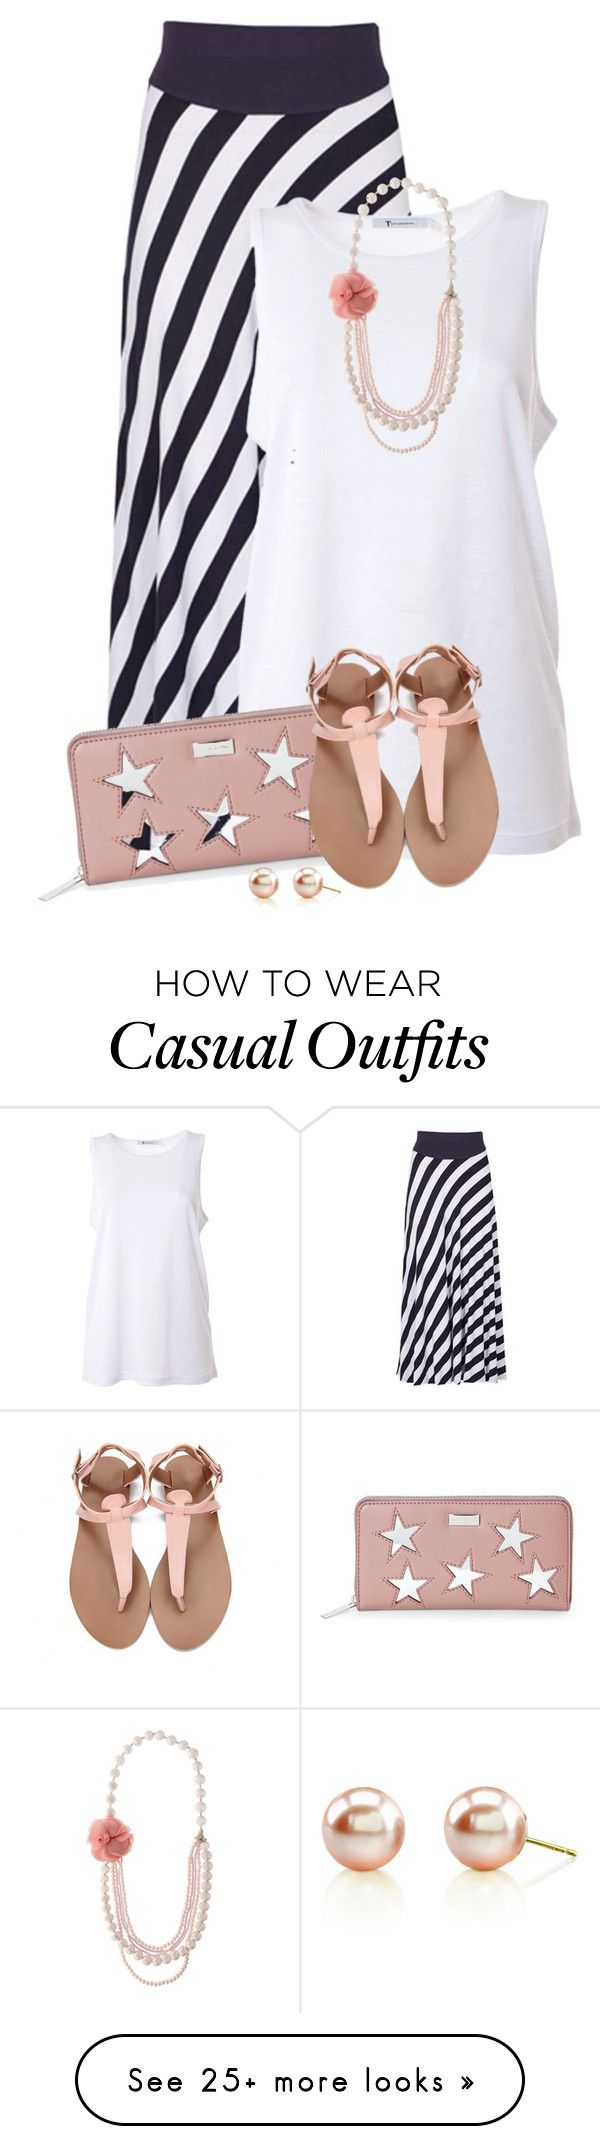 """Easy Summer Style"" by kginger on Polyvore featuring Izabel London, T By Alexander Wang, STELLA McCARTNEY and Adele Marie"